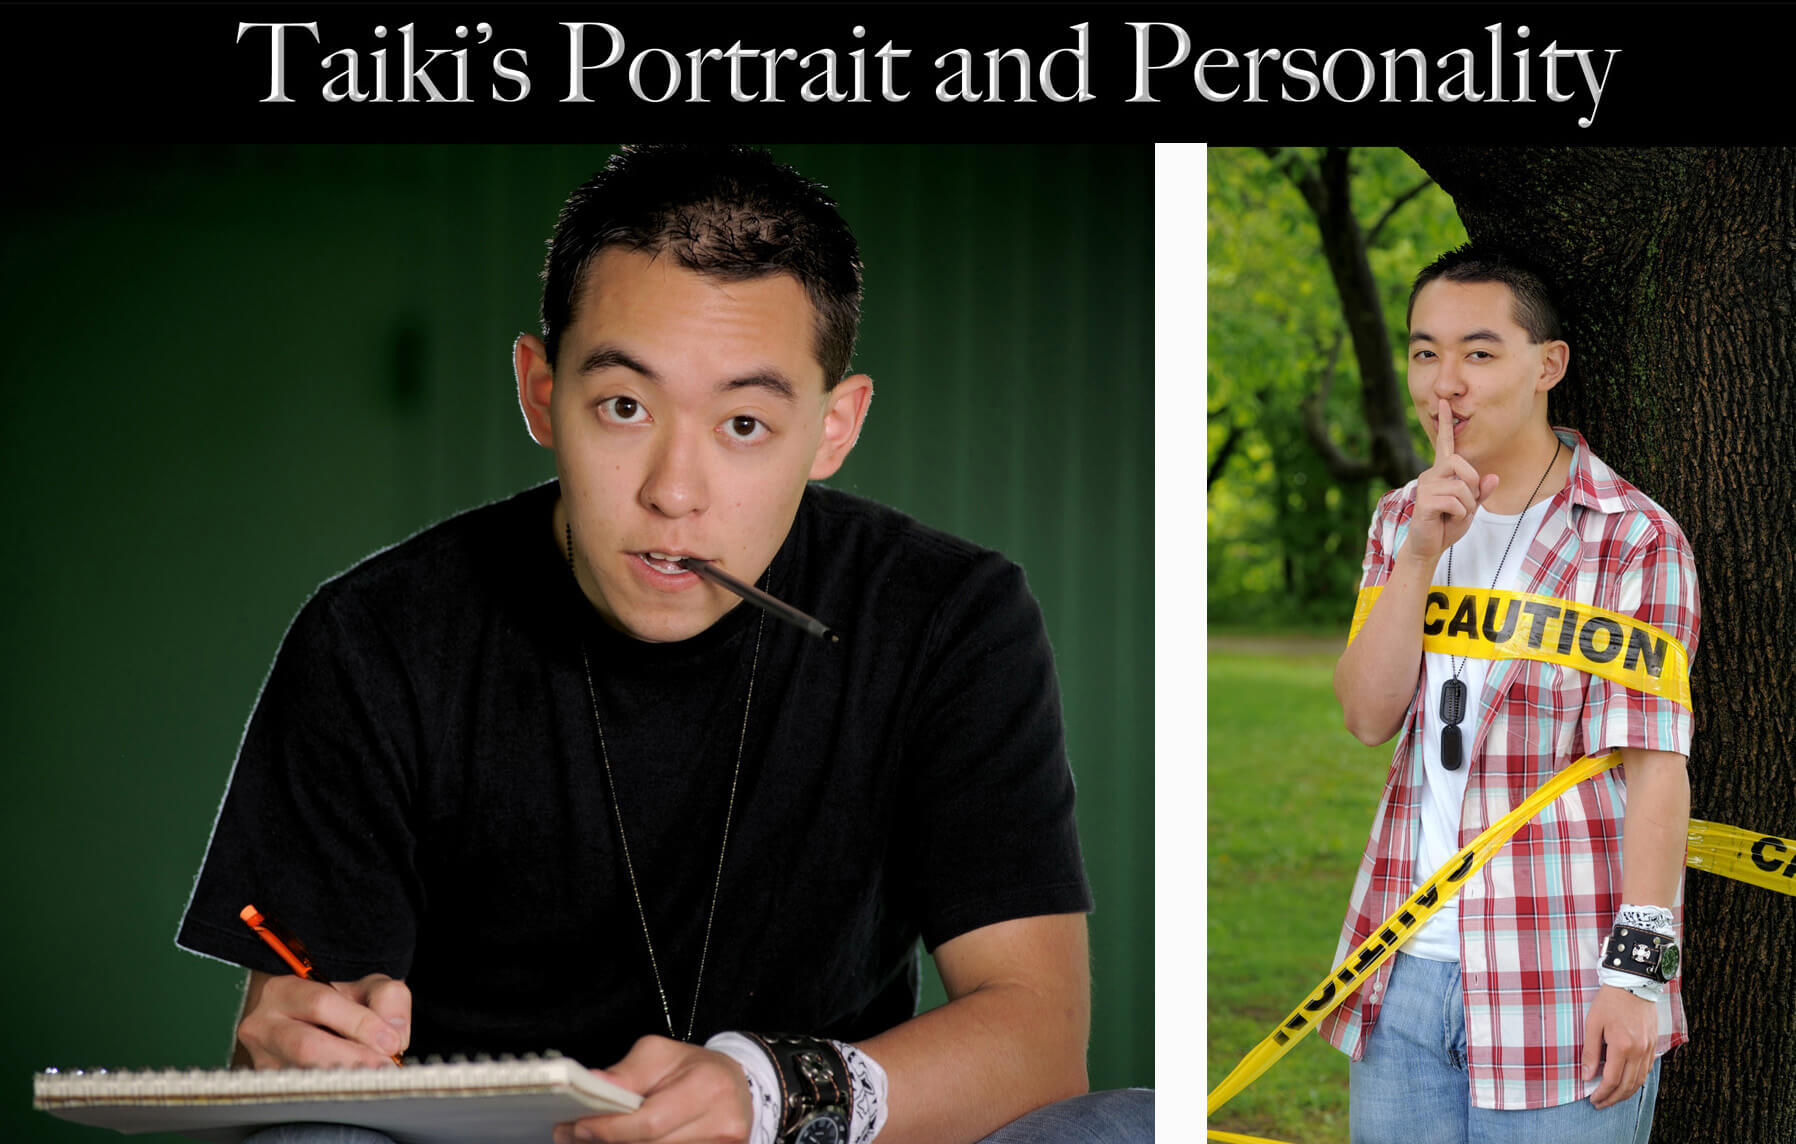 An Athens High school senior who is artistic and quirky put his personality on full display during his senior pictures shoot.